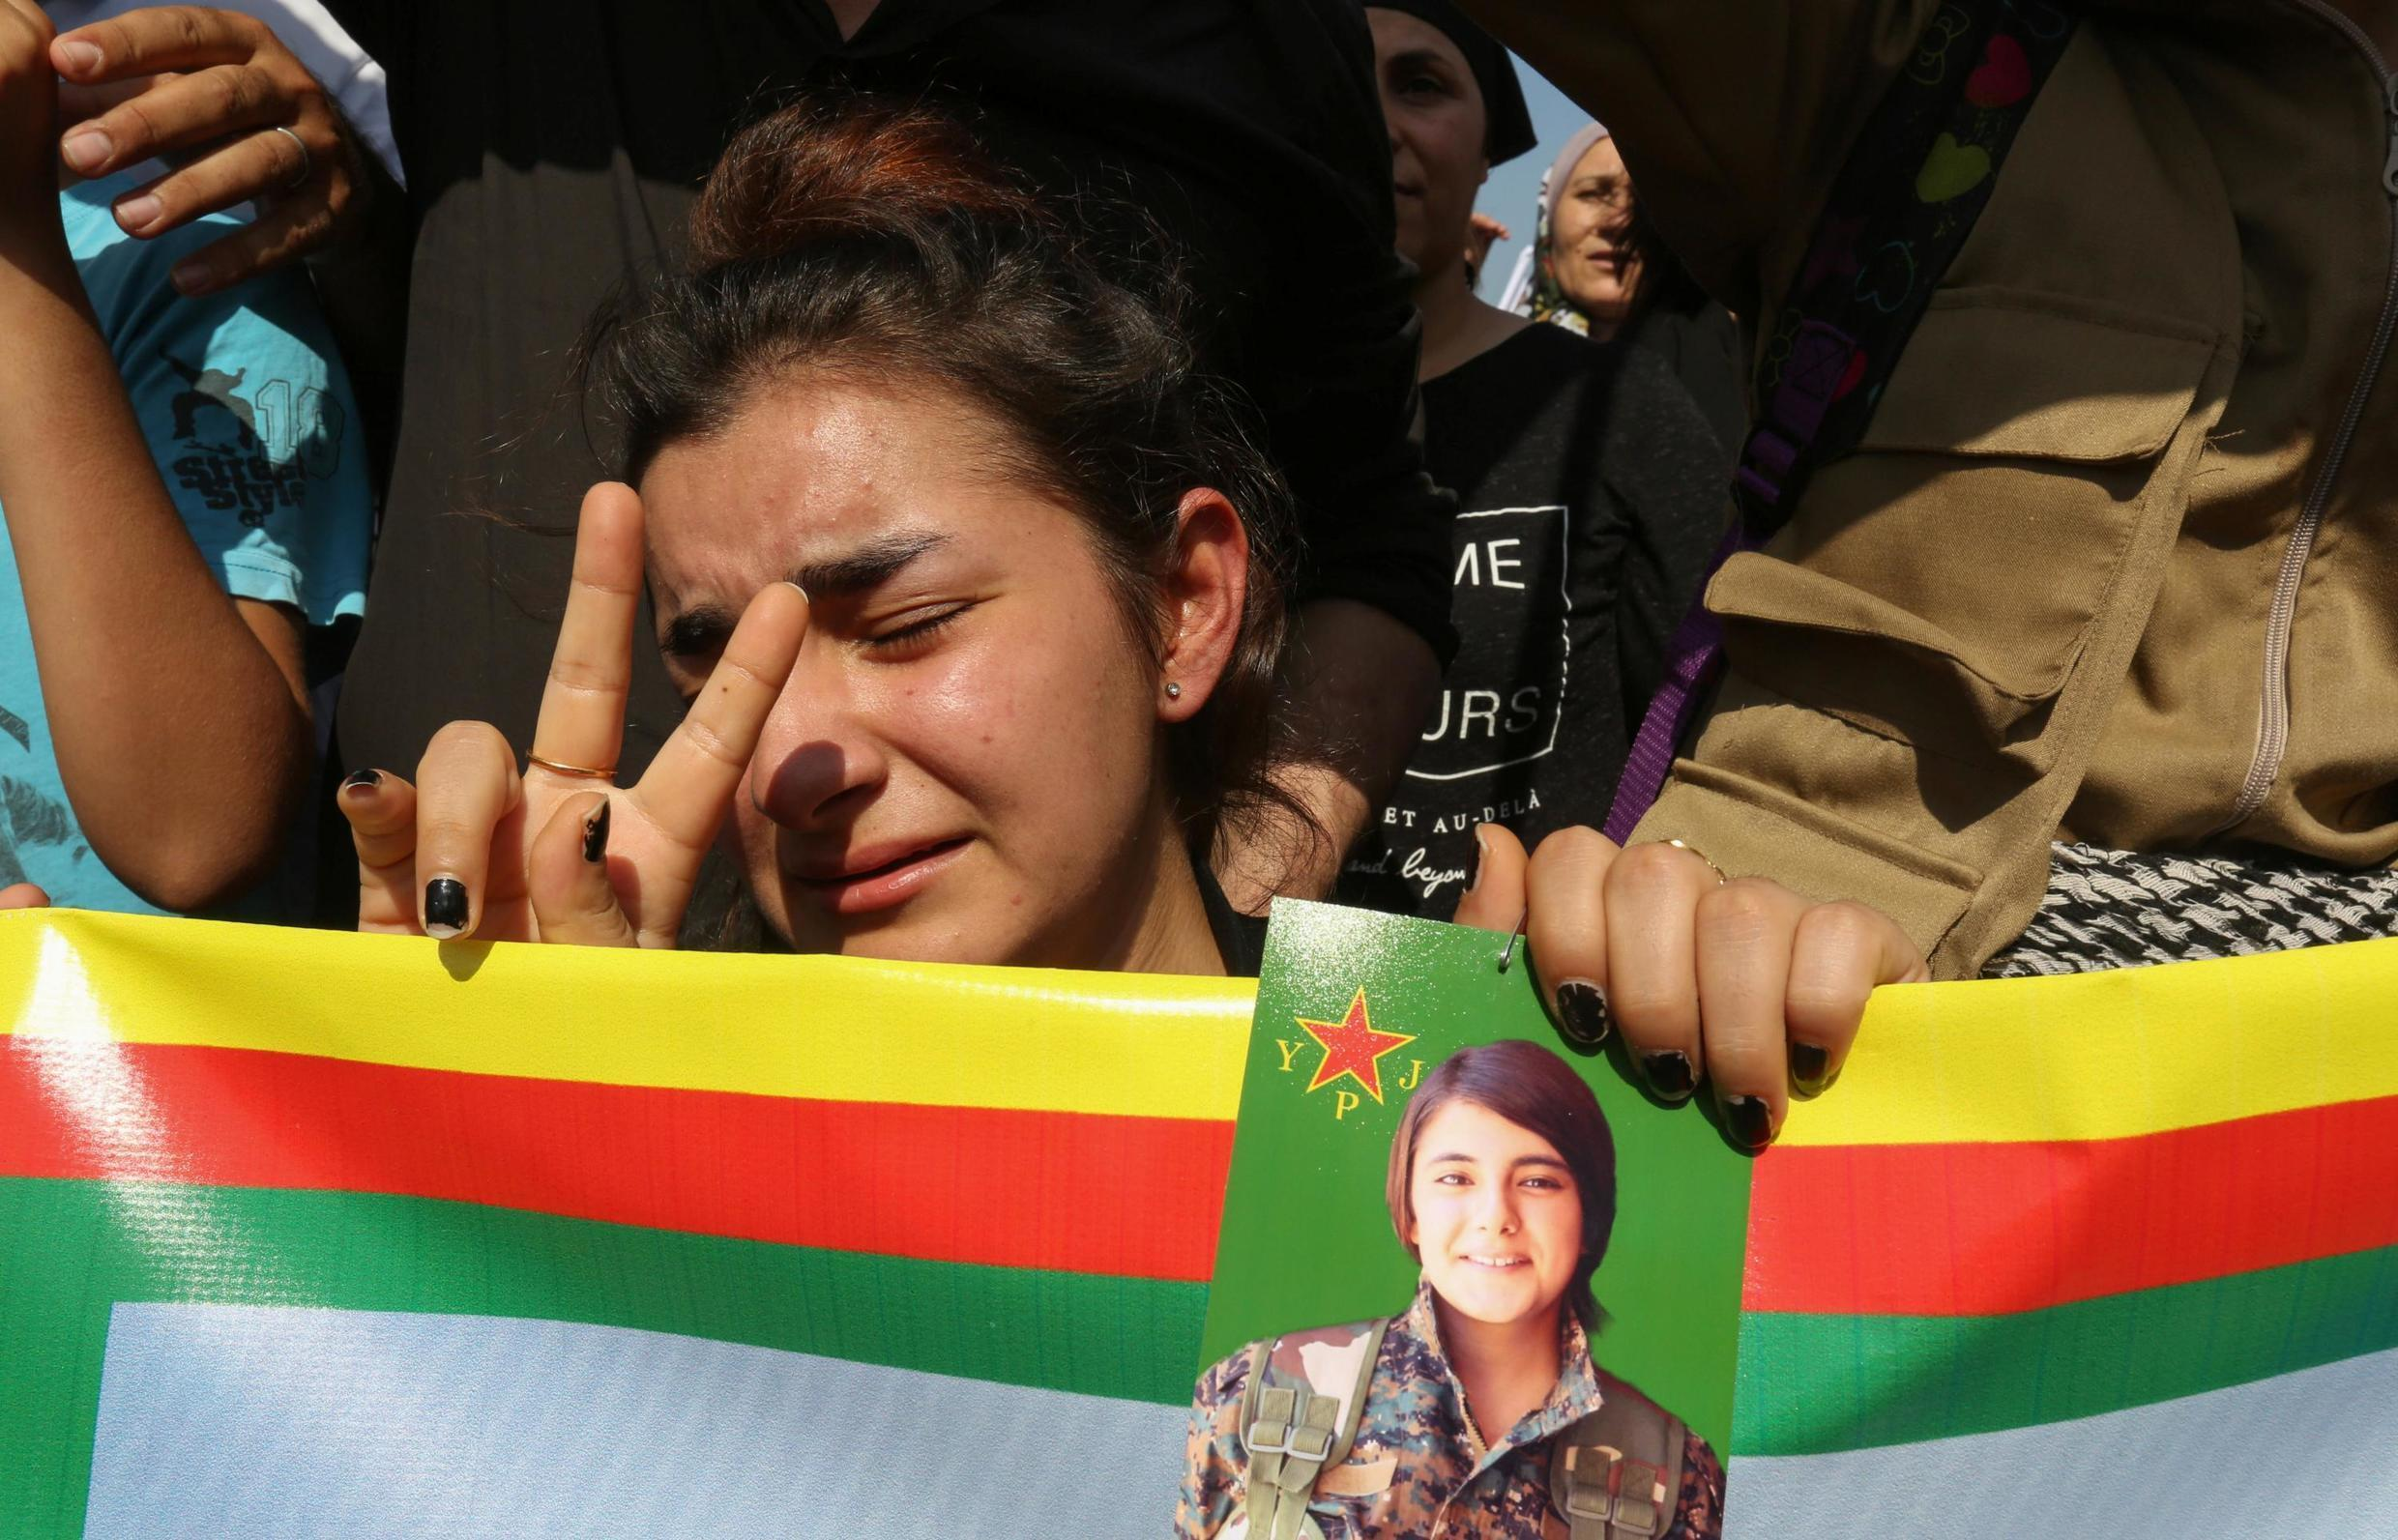 Kurds living in Lebanon protest against Turkey's military action in northeastern Syria, in Beirut, Lebanon October 13, 2019.